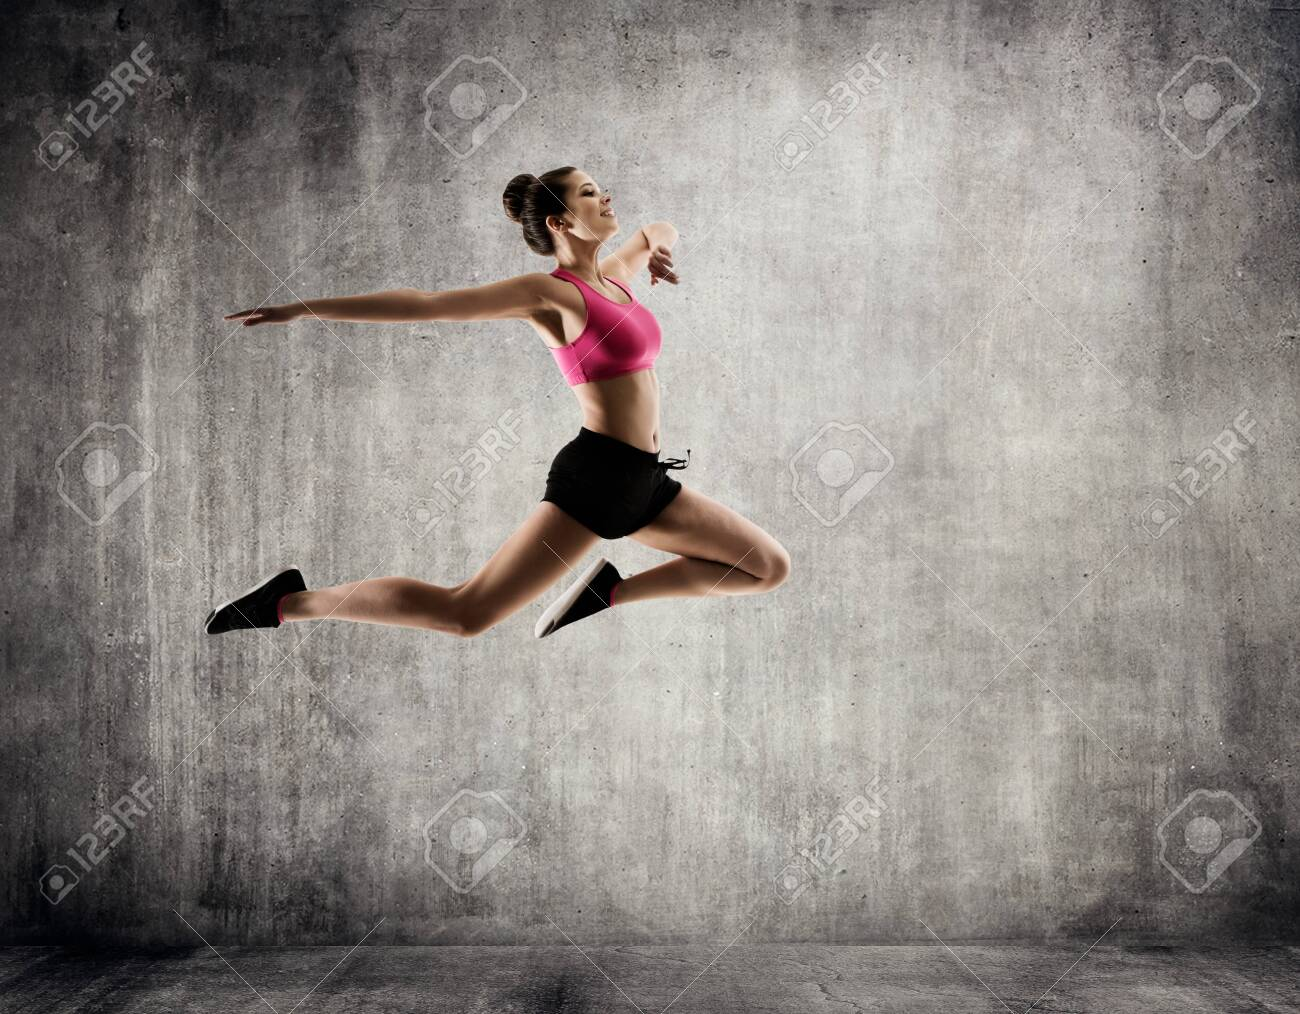 Beautiful Woman Jumping in Sport Dance, Young Happy Girl flying in Jump, Gymnastics Fitness Exercise - 155430327